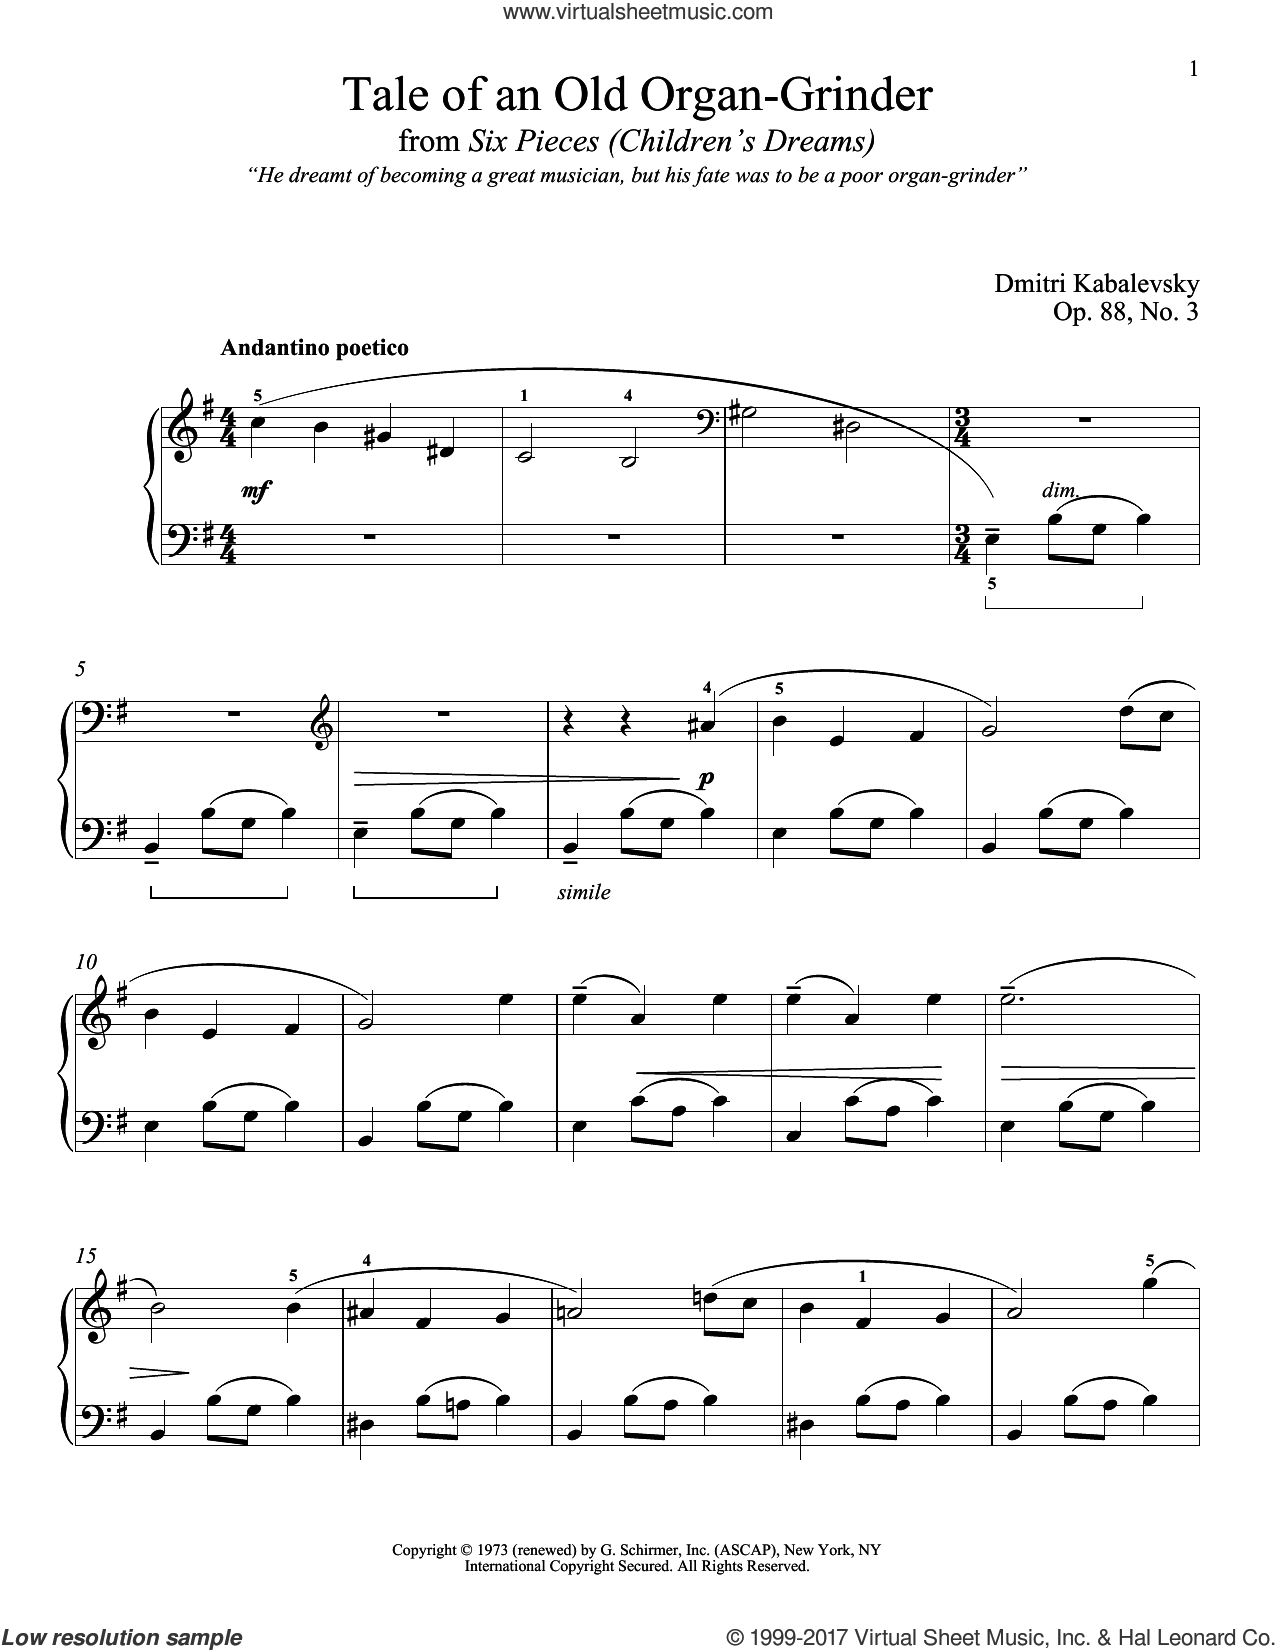 Tale Of An Old Organ-Grinder, Op. 88, No. 3 sheet music for piano solo by Dmitri Kabalevsky. Score Image Preview.